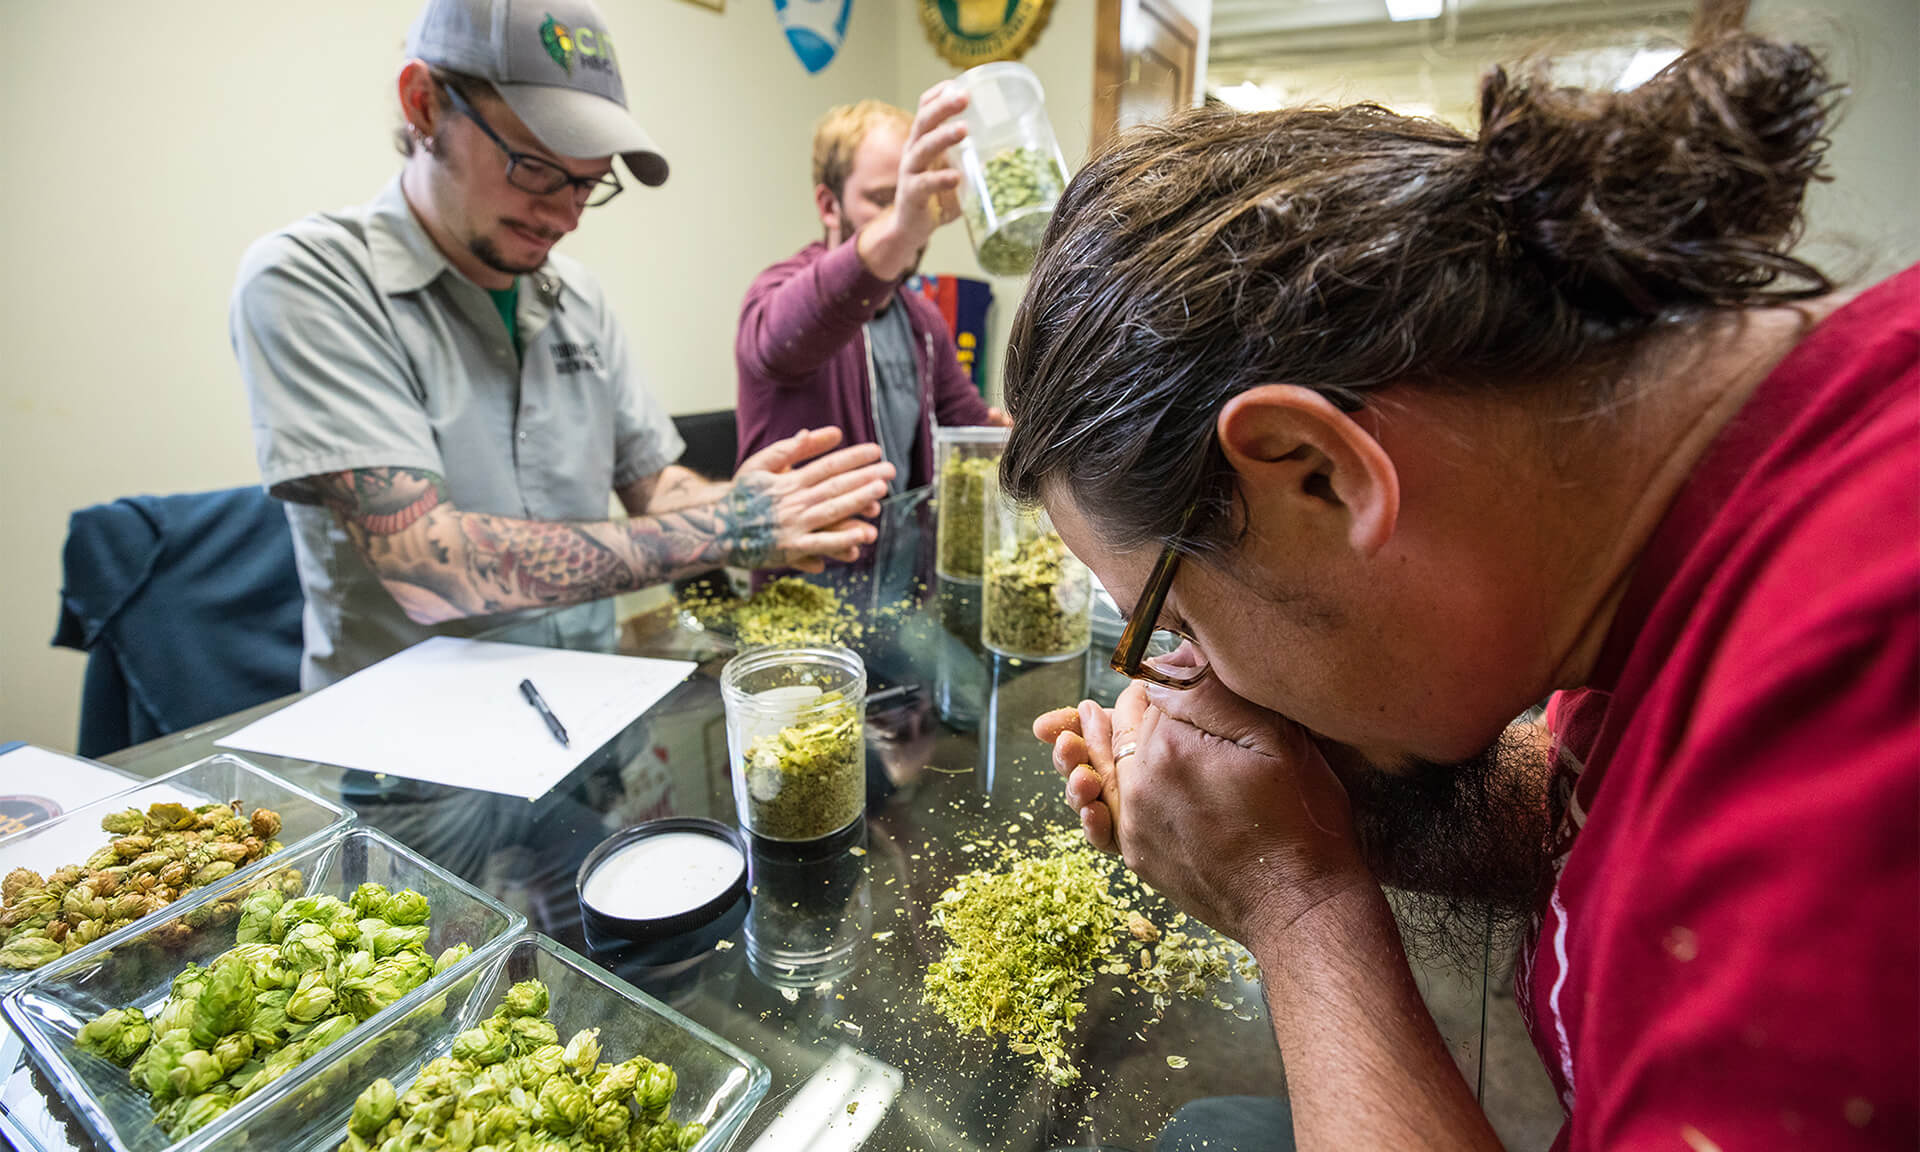 Brewers investigating the hops and packaging them into containers